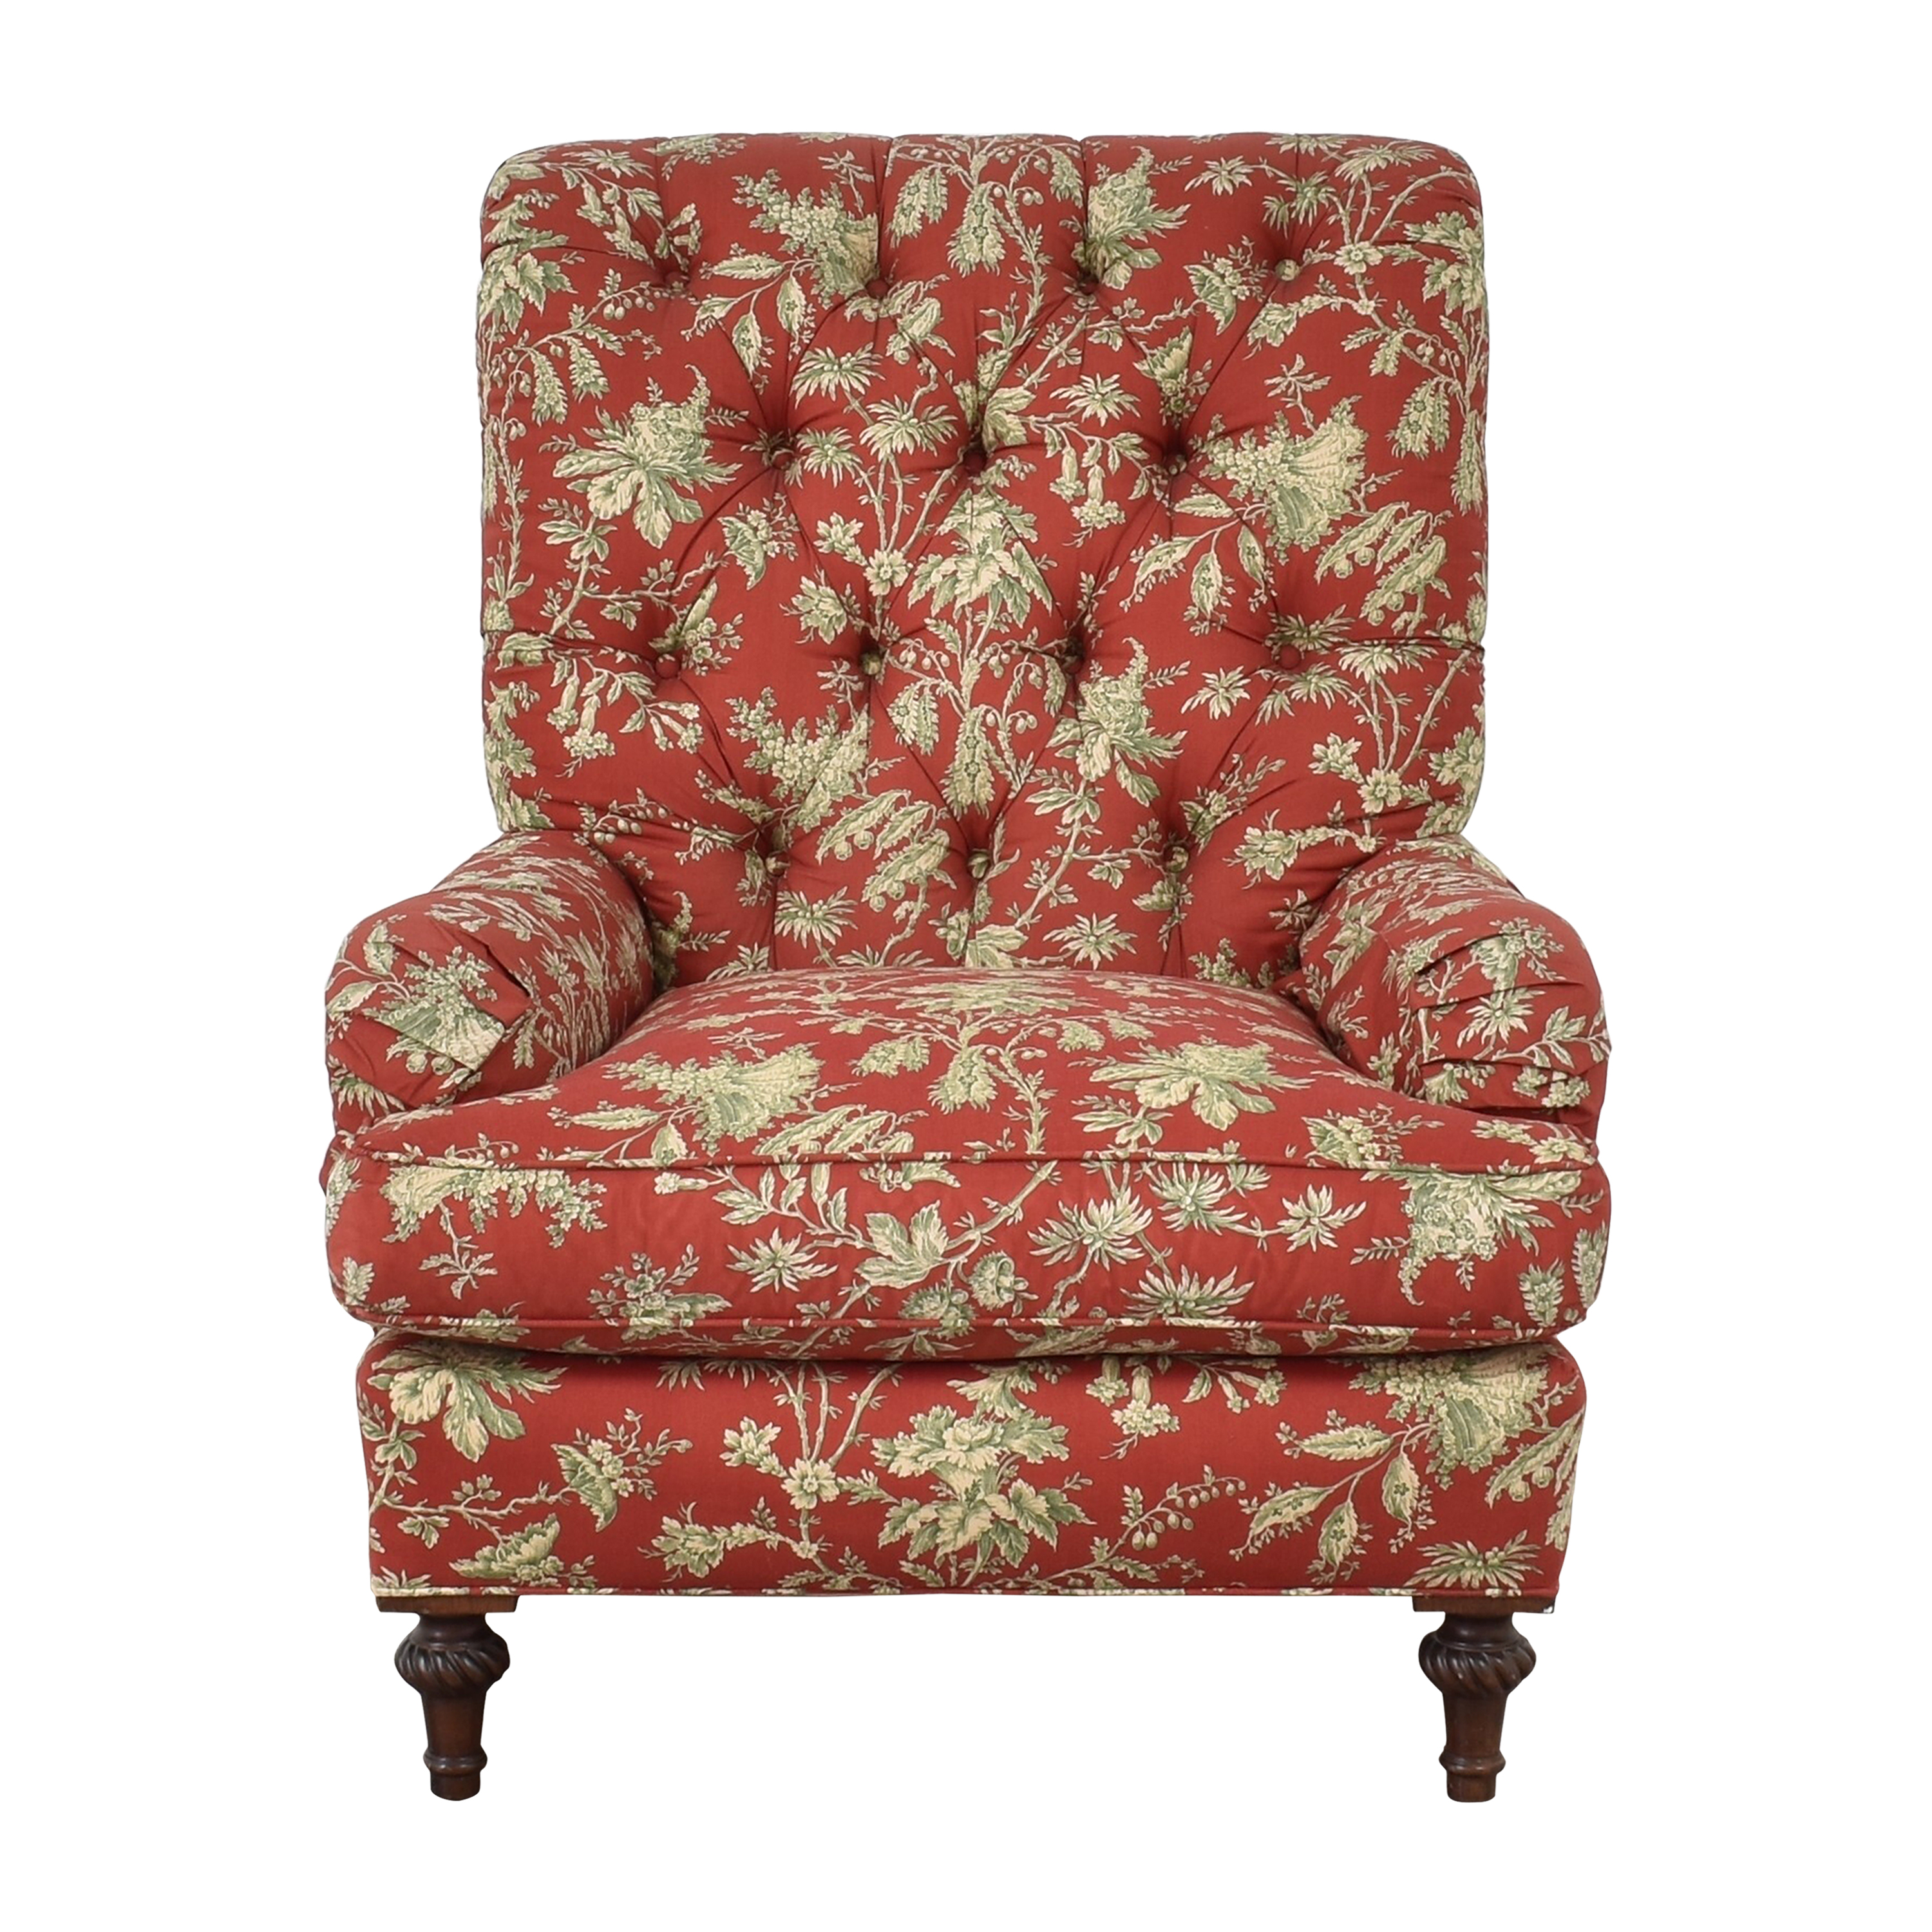 buy Charles Stewart Company Tufted Accent Chair Charles Stewart Company Accent Chairs